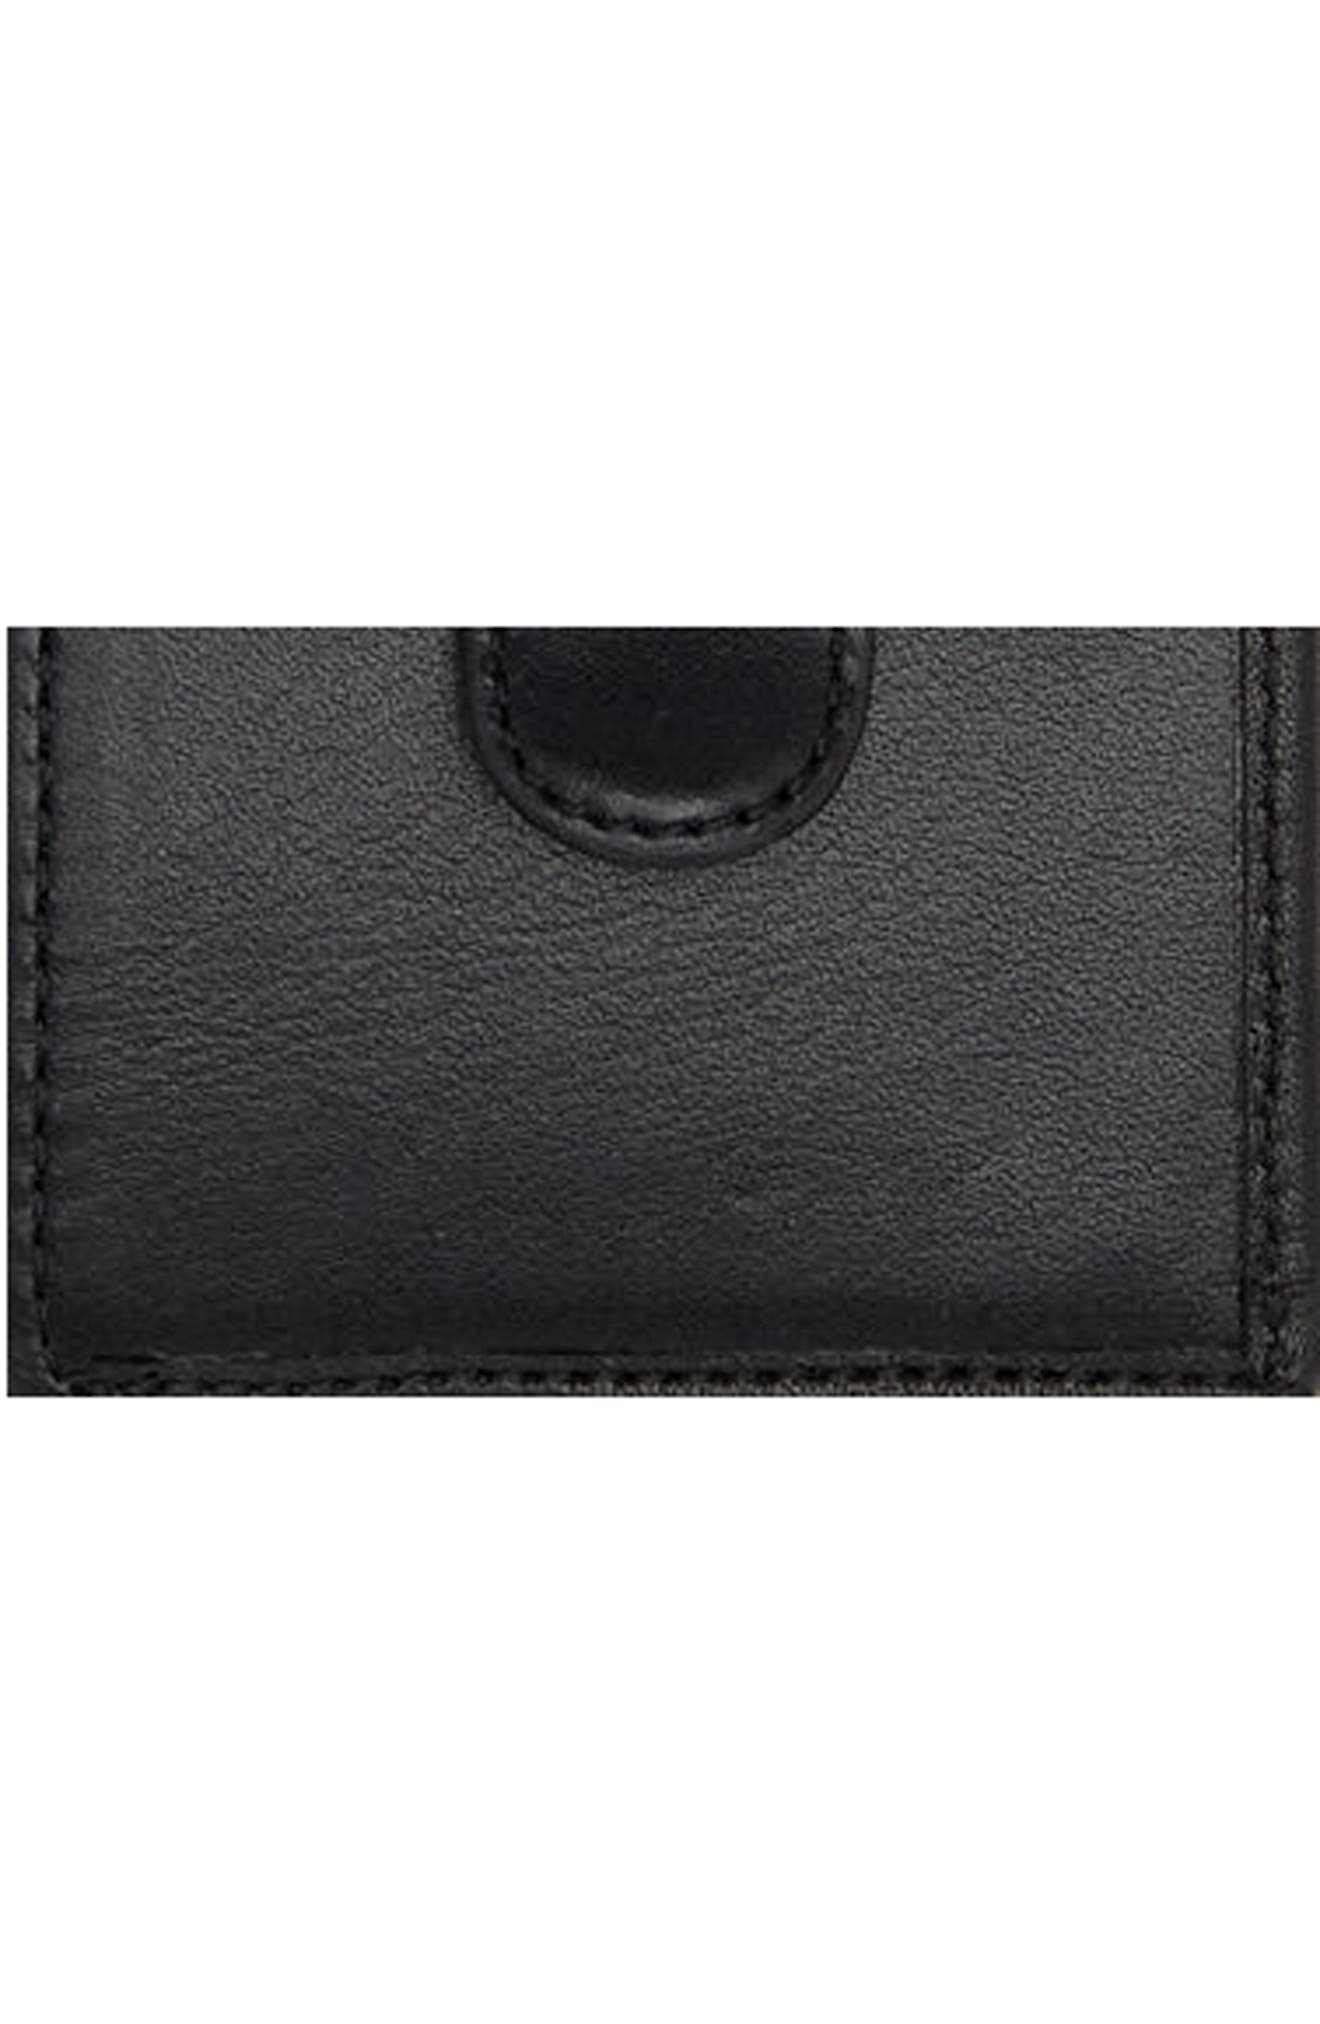 Alpha Money Clip Card Case,                             Alternate thumbnail 3, color,                             ANTHRACITE/ BLACK